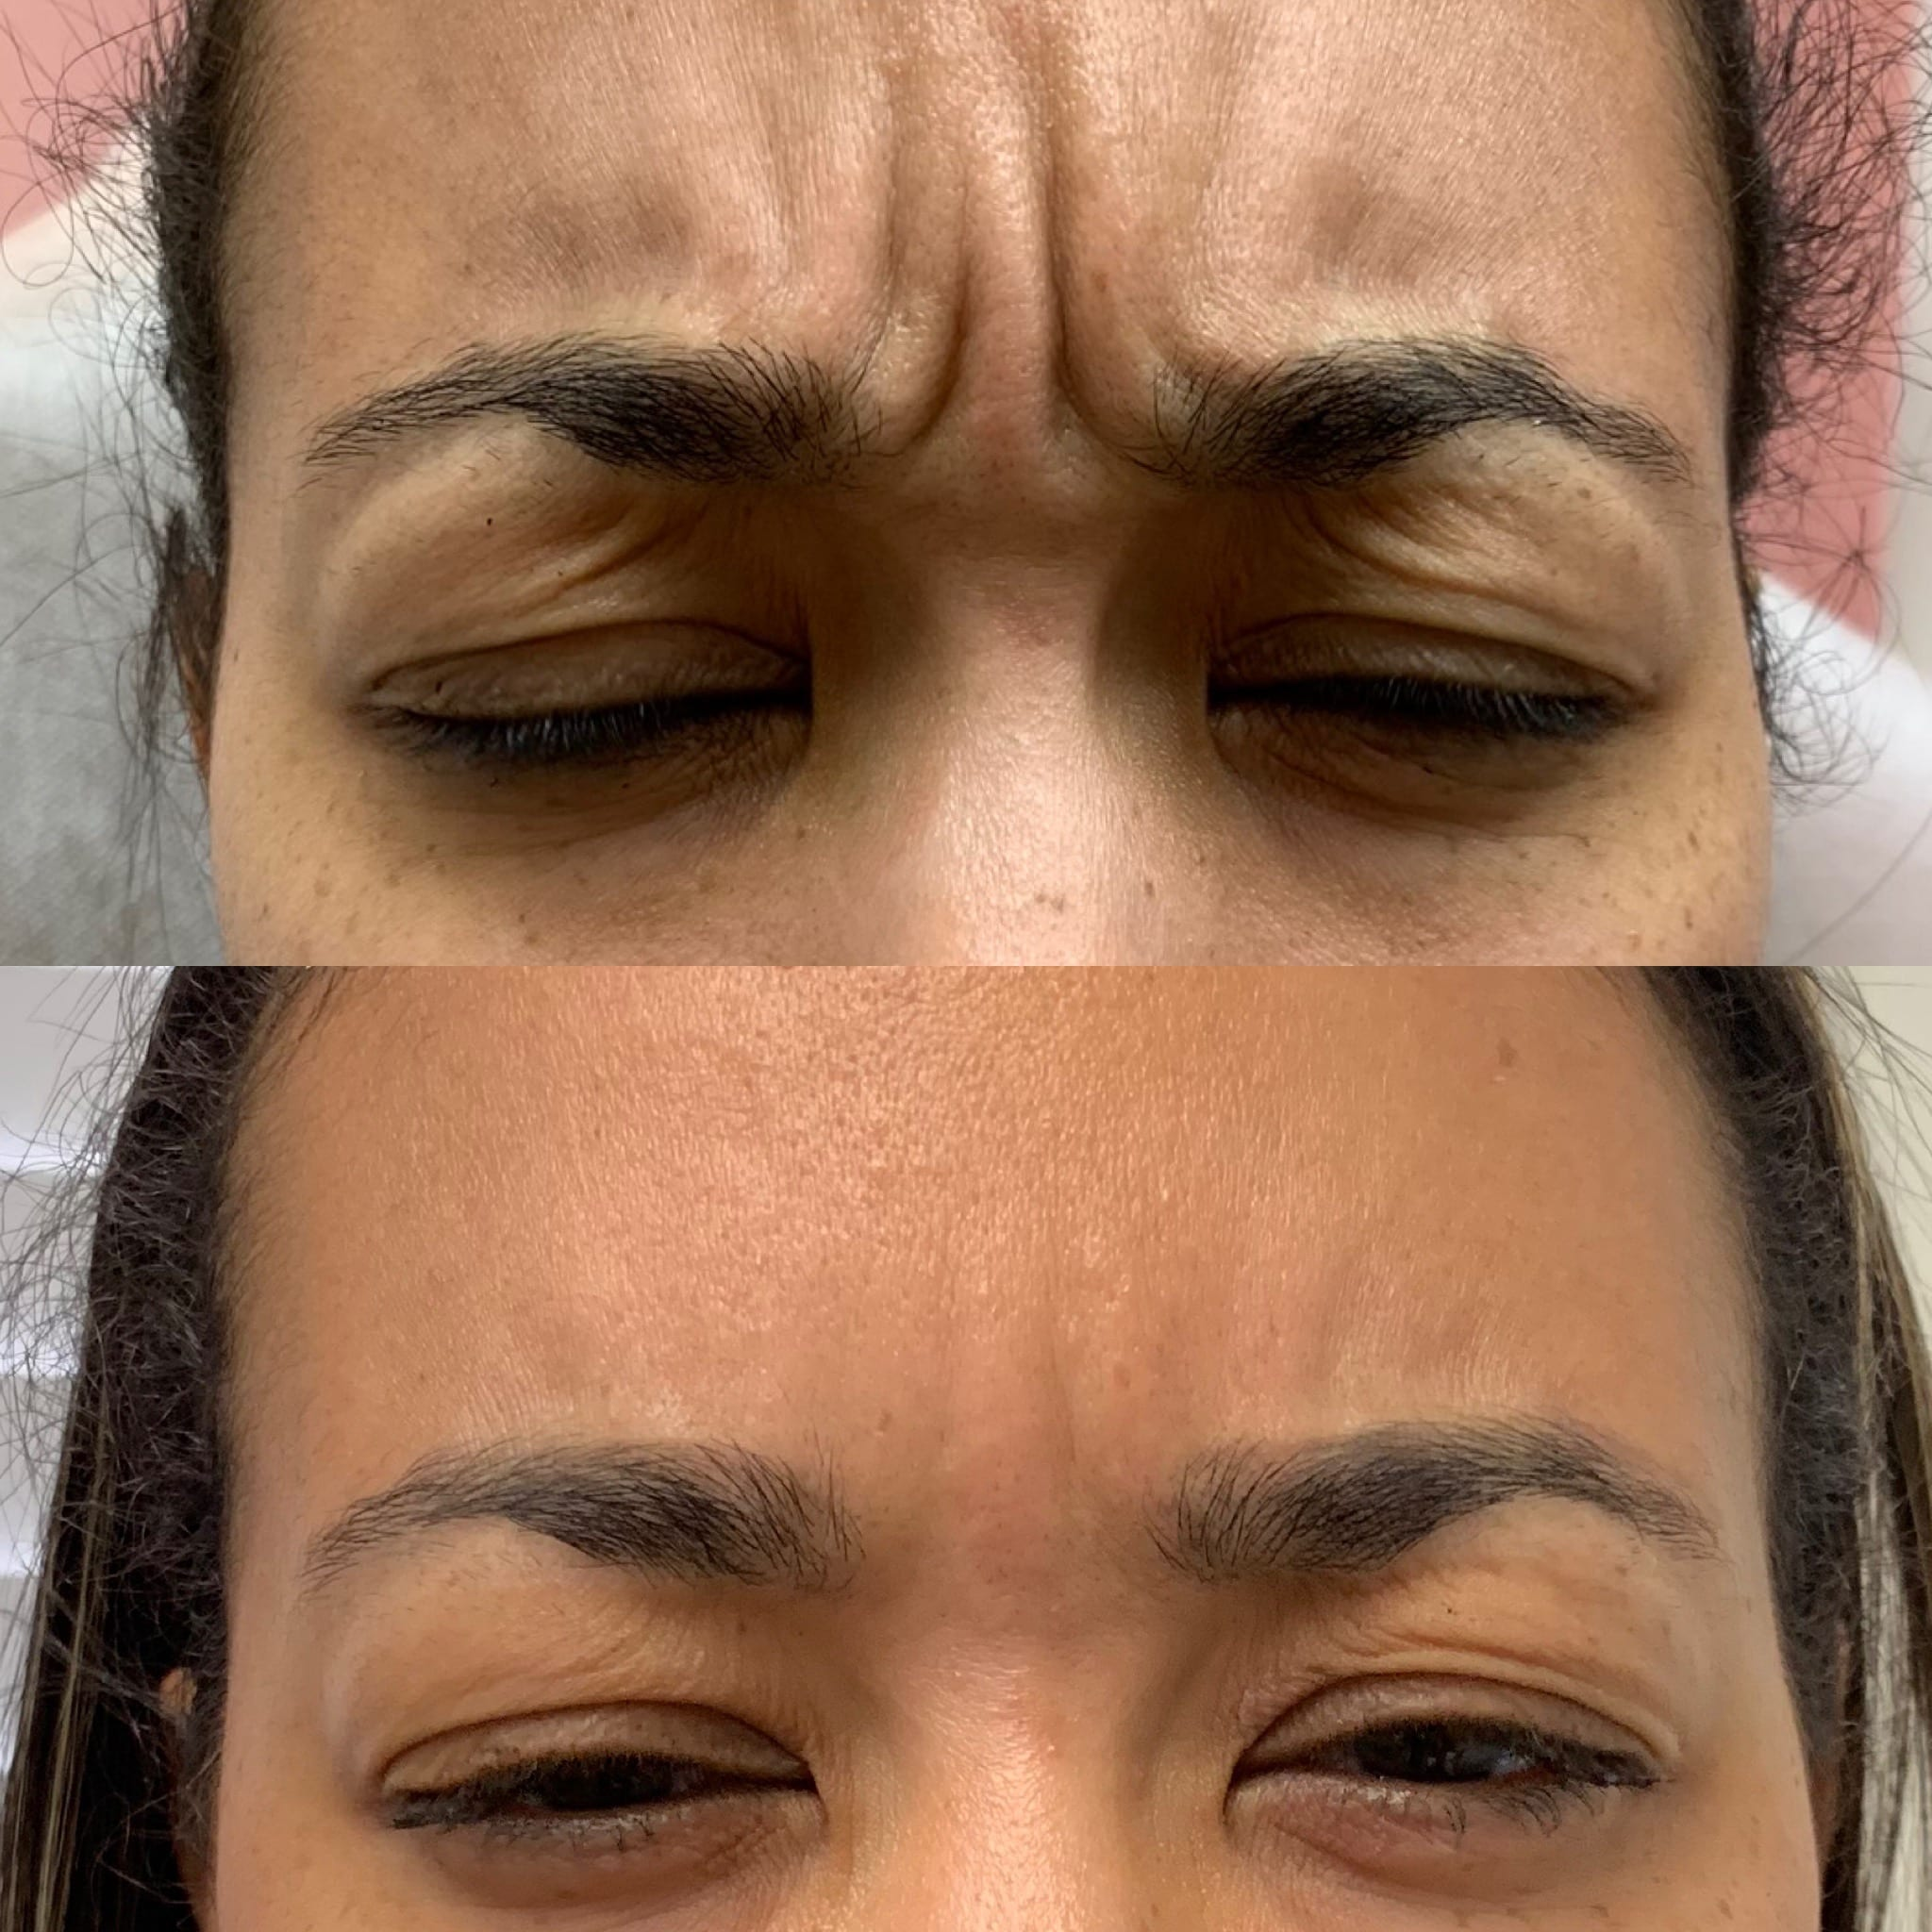 36 y/o African American F 2 weeks after 30 units of botox to her frown lines.